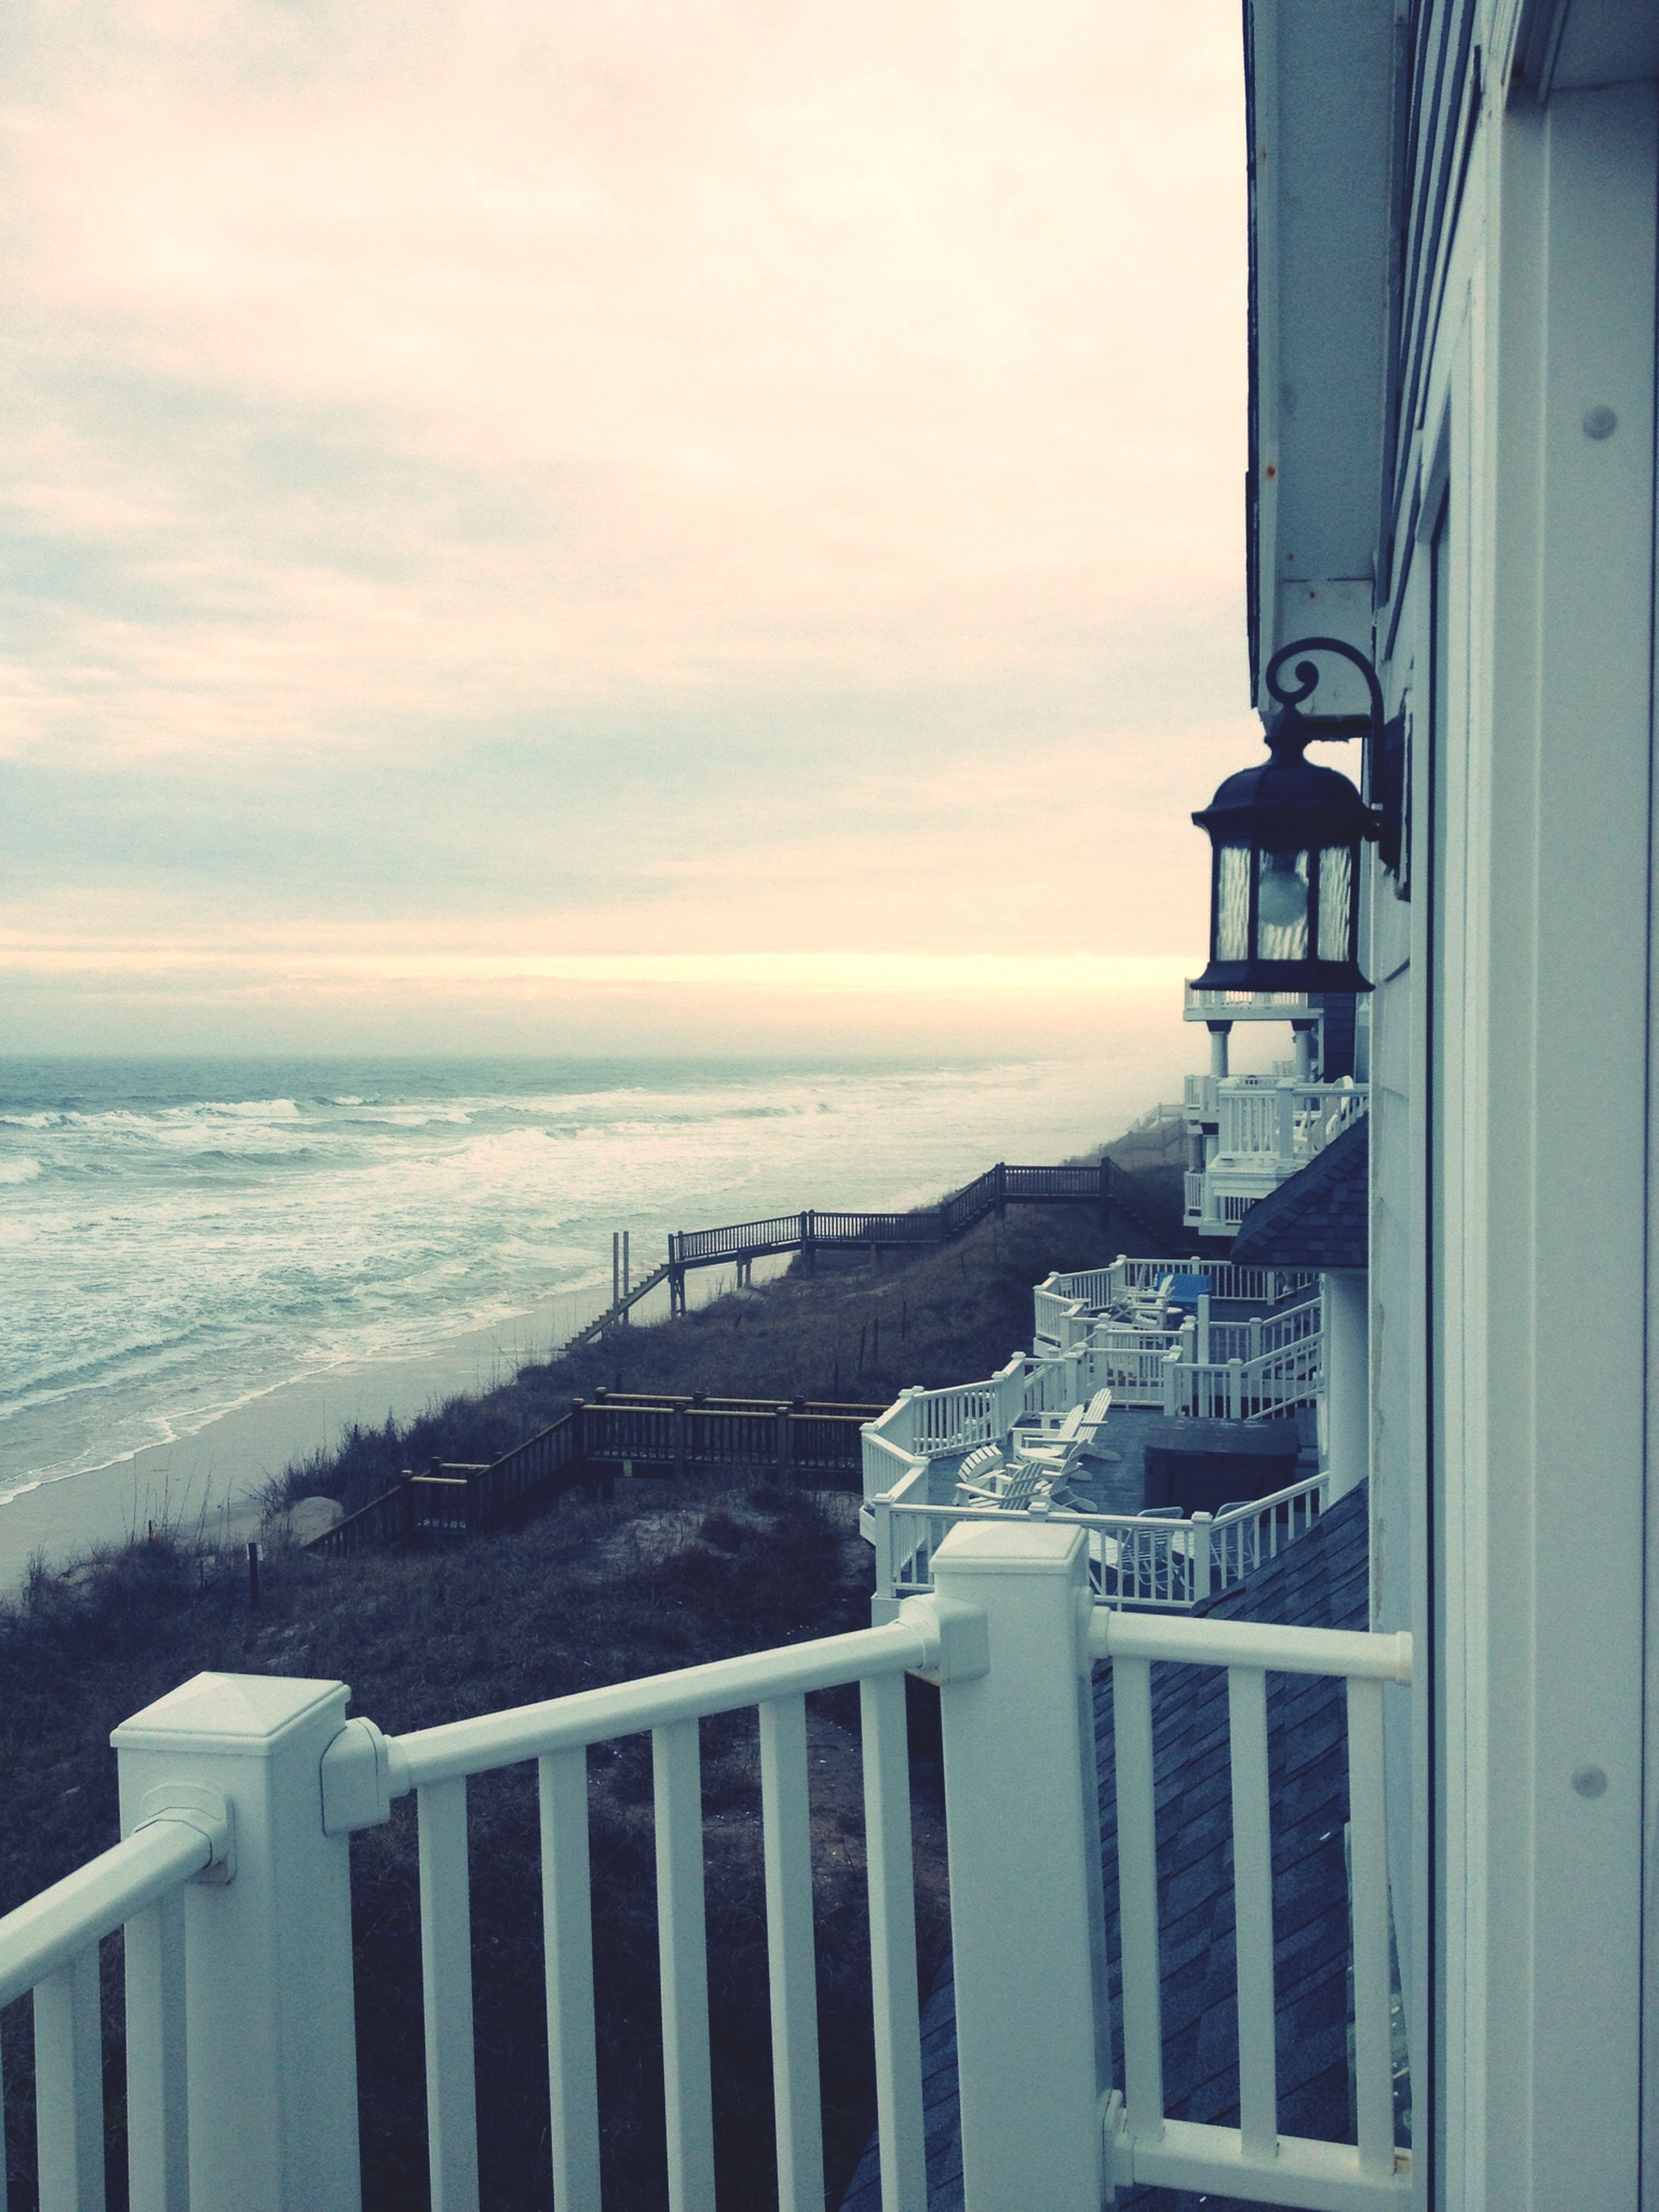 sea, built structure, architecture, horizon over water, sky, building exterior, water, cloud - sky, beach, railing, scenics, beauty in nature, nature, cloud, tranquility, tranquil scene, outdoors, shore, no people, idyllic